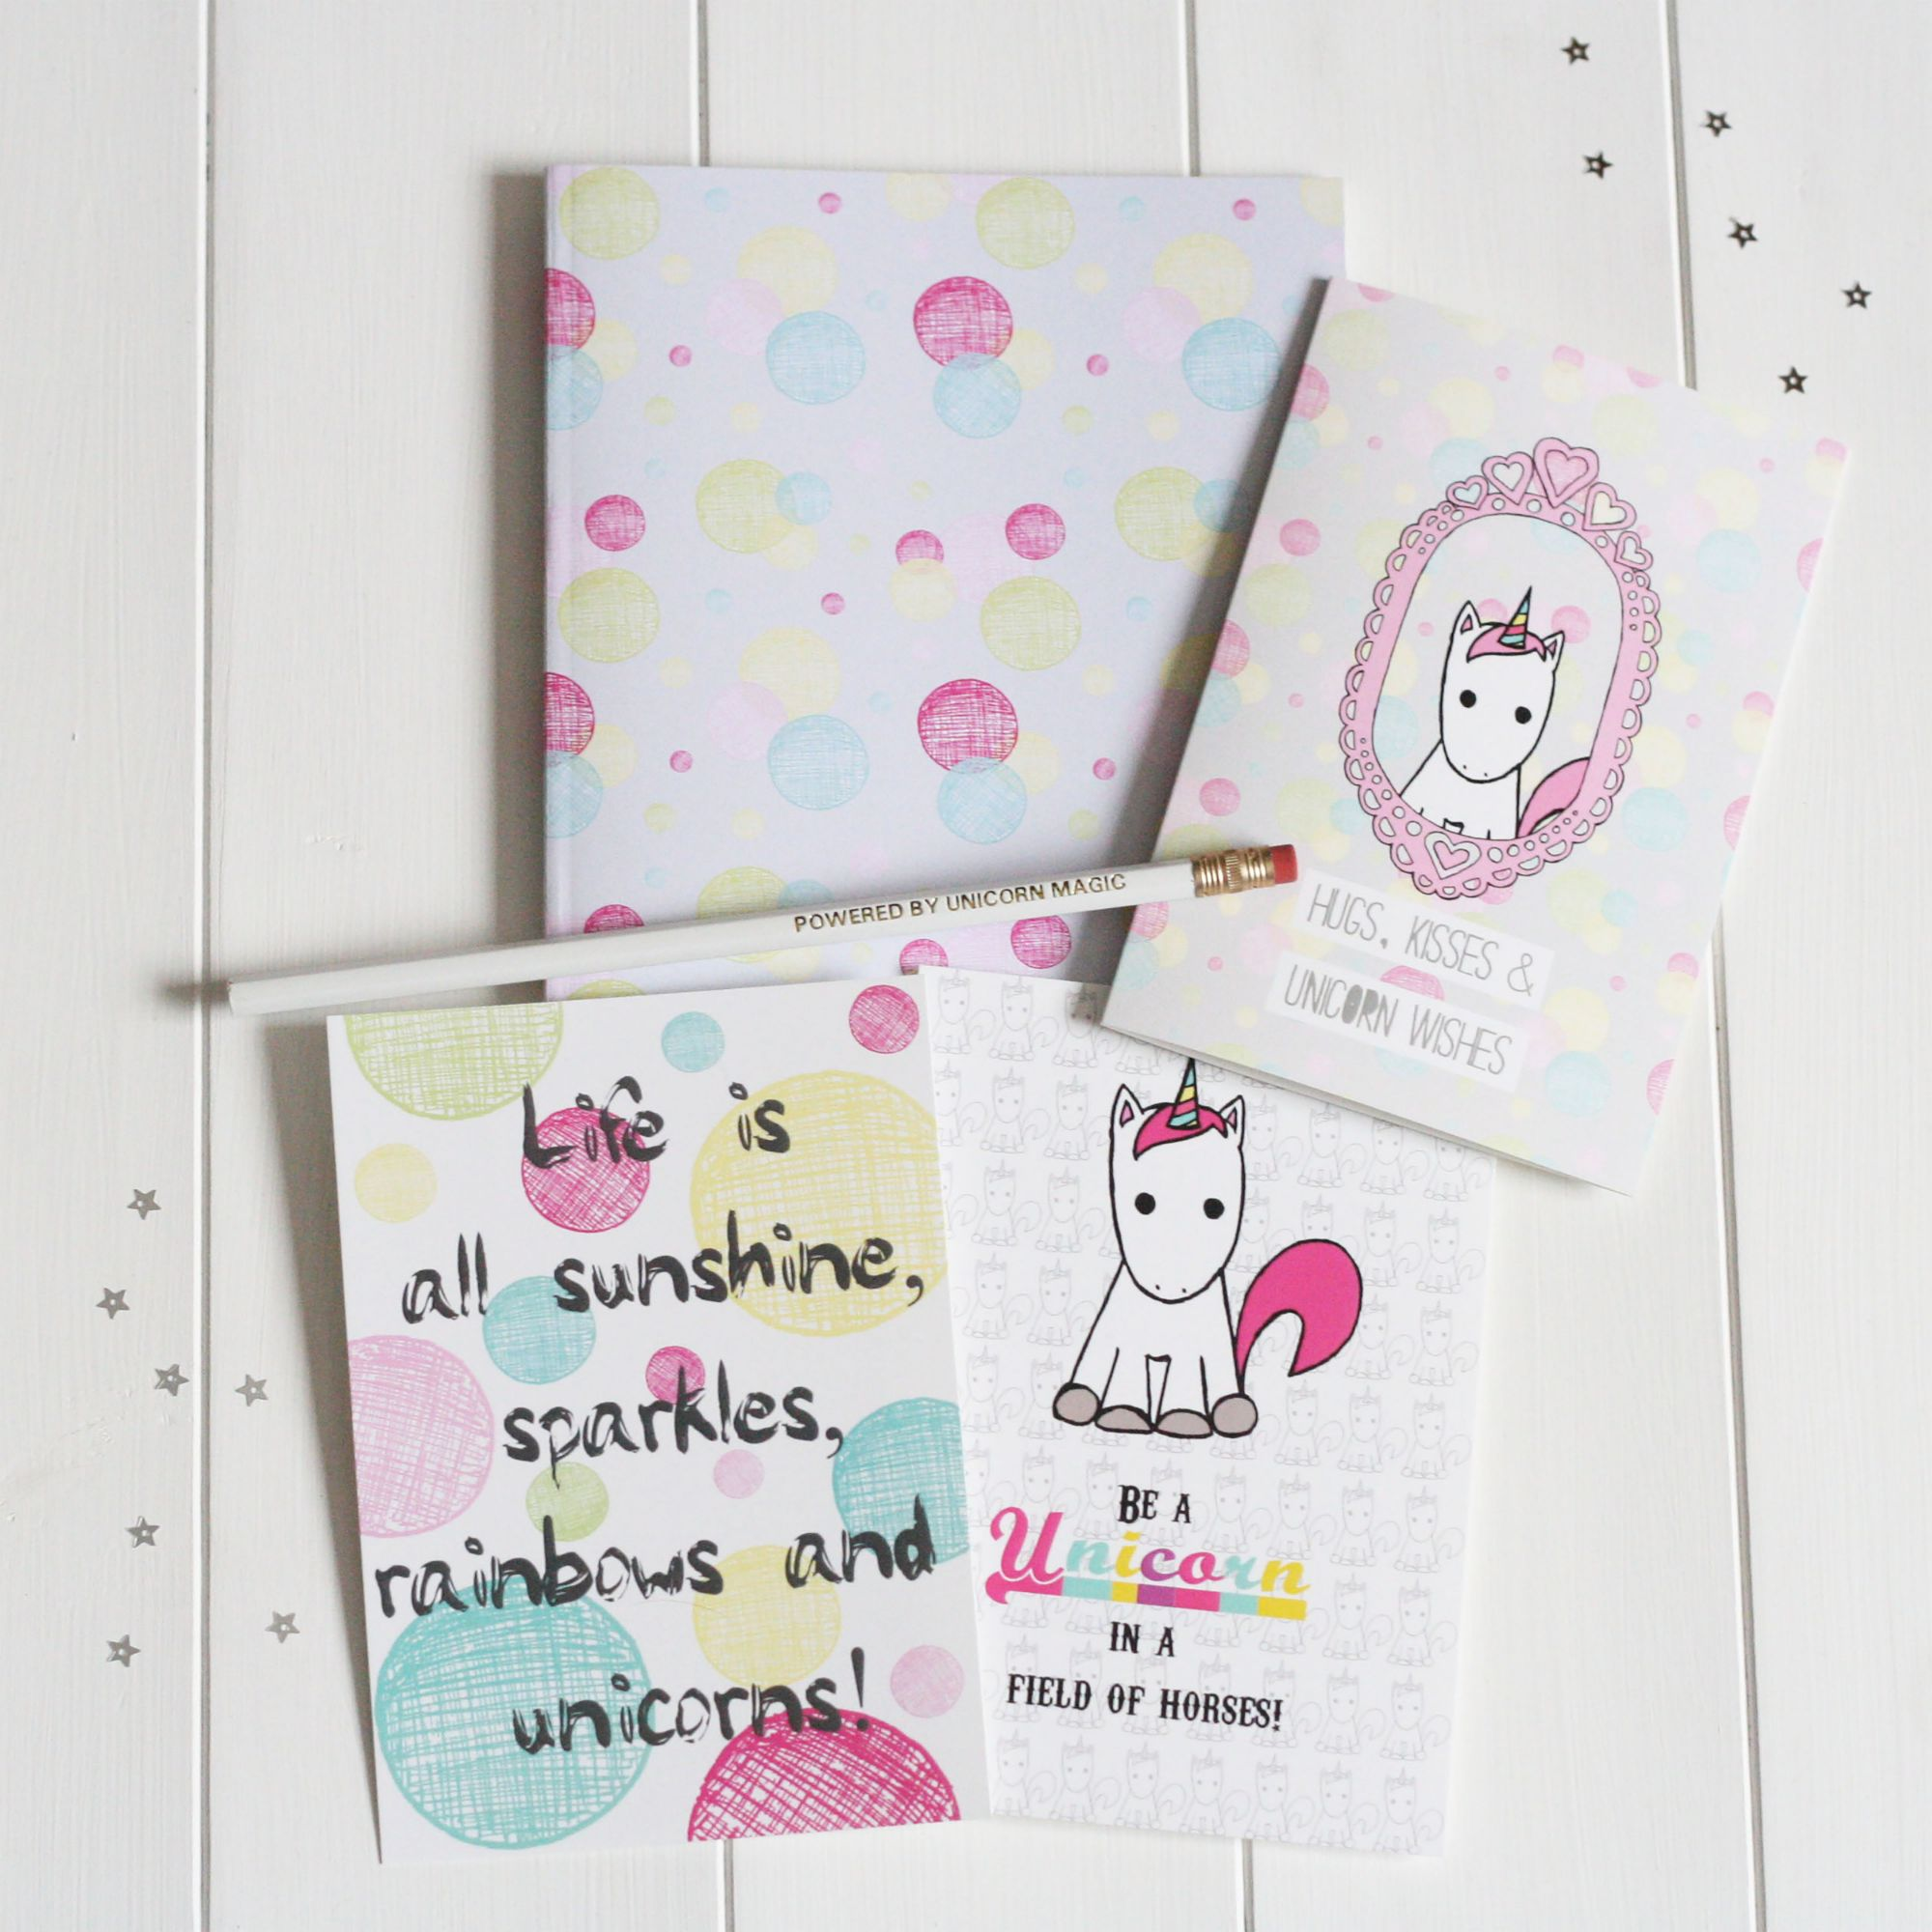 UNICORN STATIONERY GIFT SET BY CLAIRE SALISBURY STUDIOS